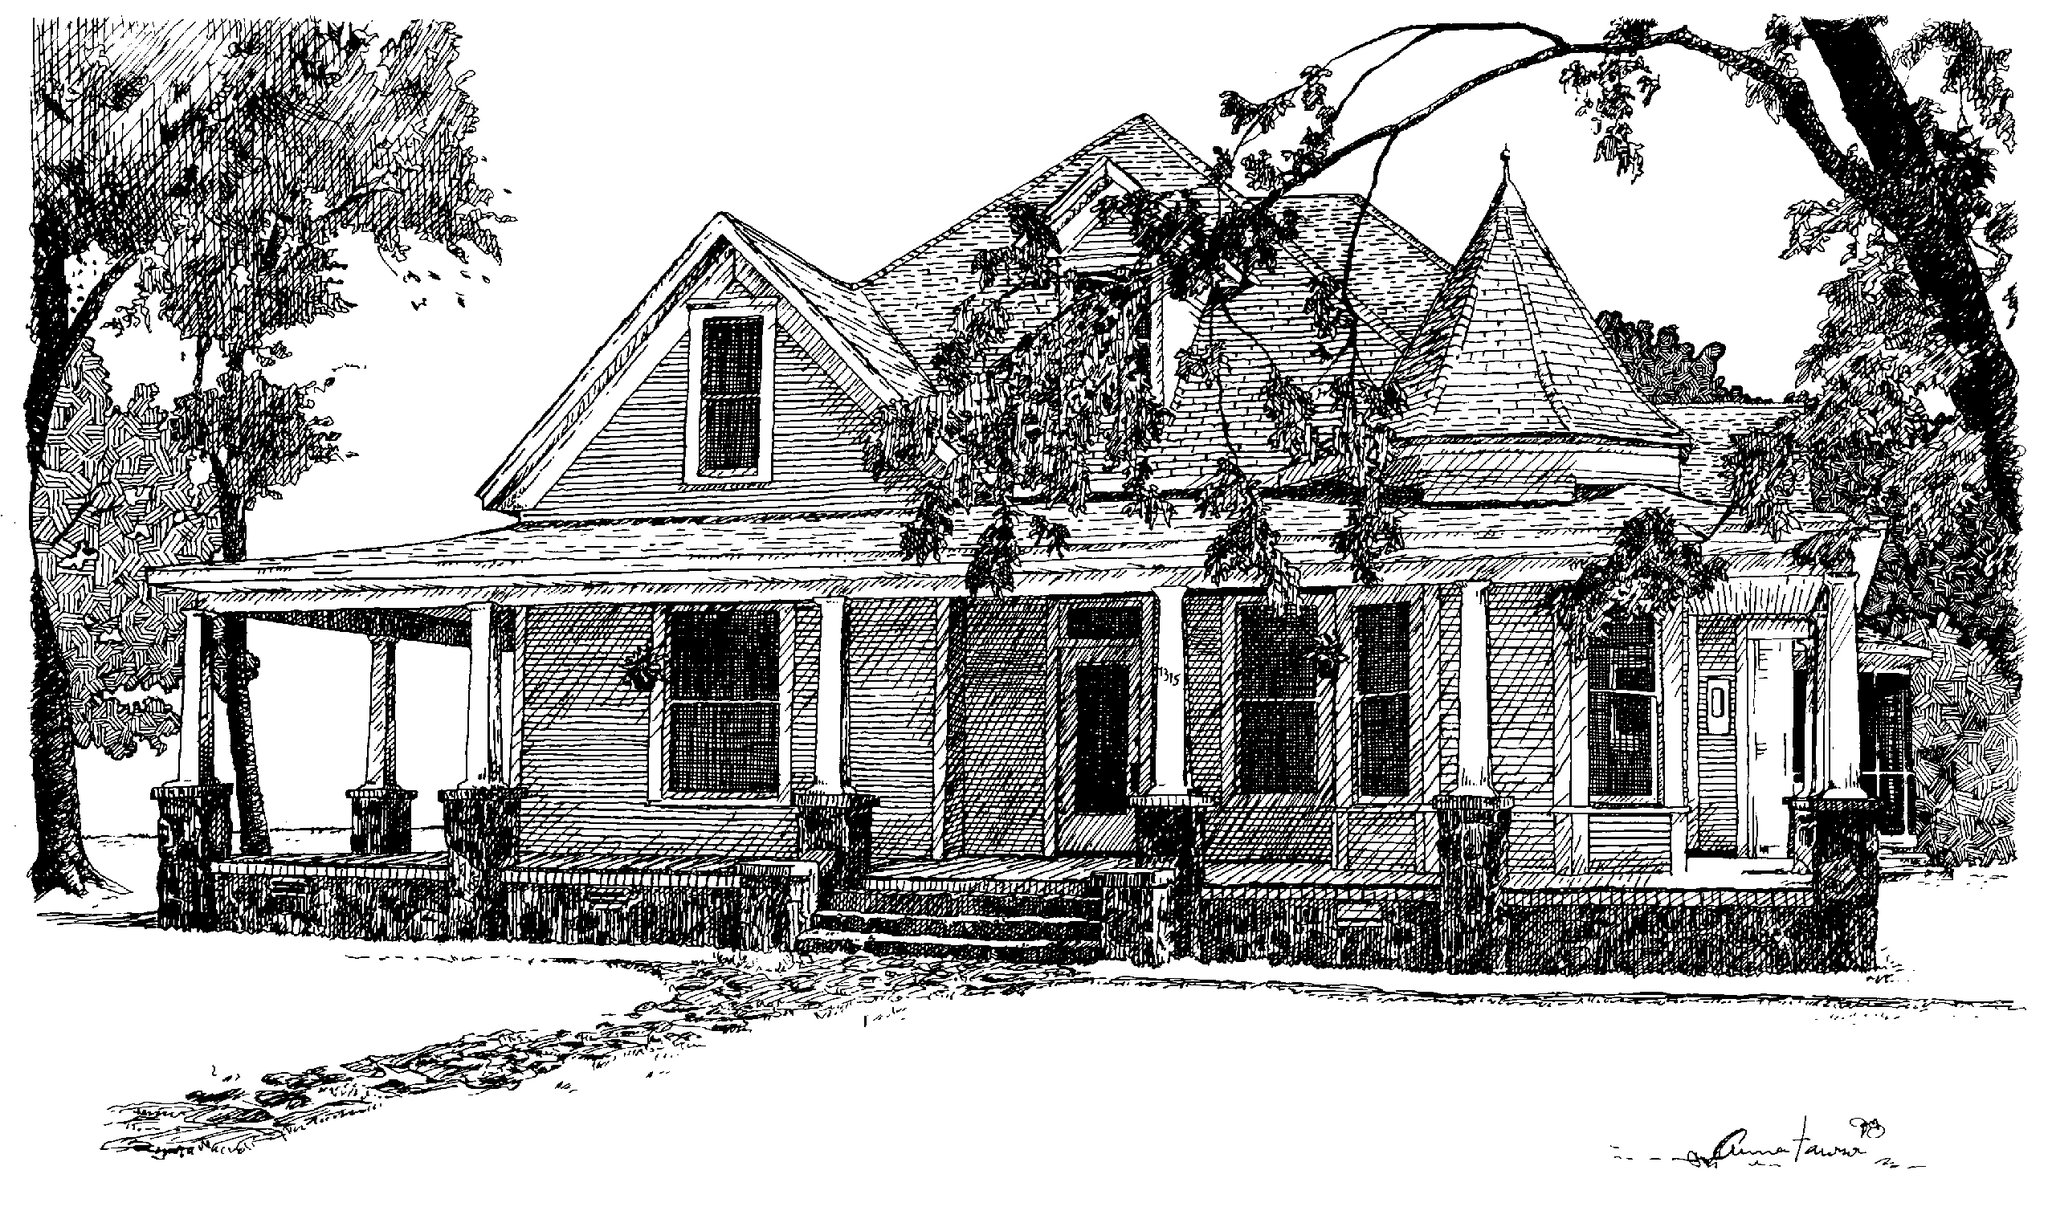 photo of a sketch of a house